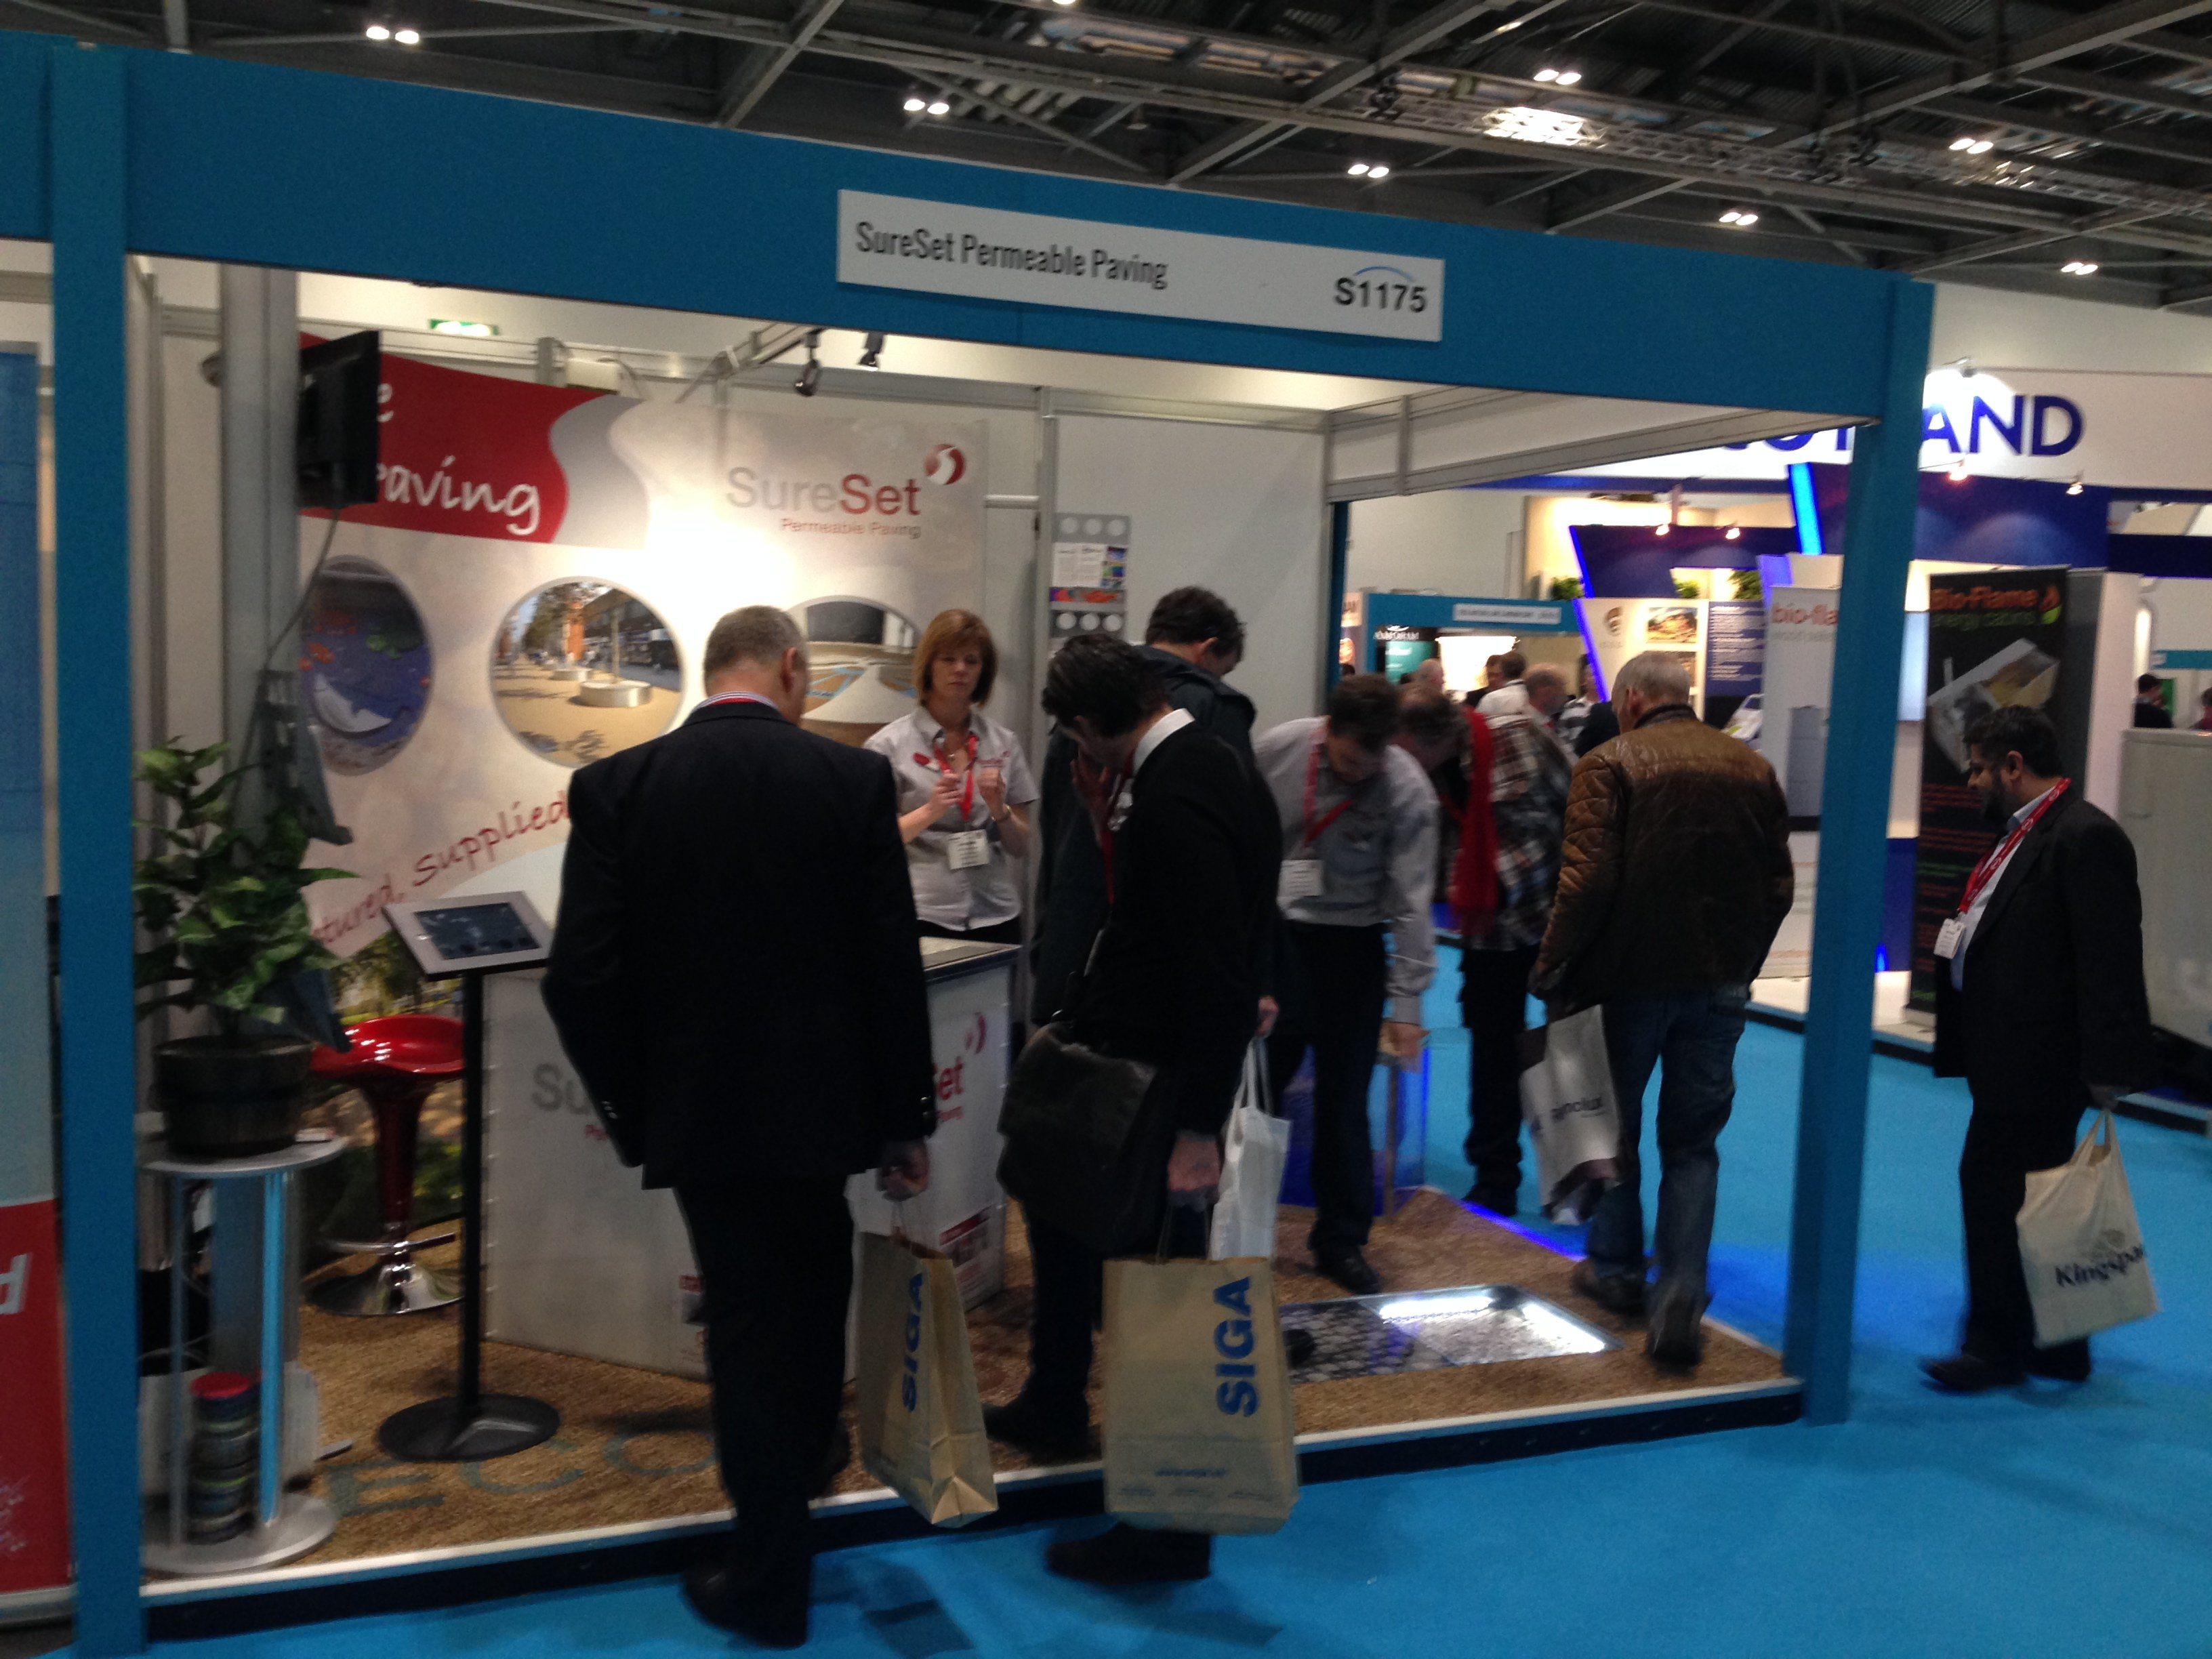 Exhibition Stand Installer Jobs : Events and exhibitions sureset